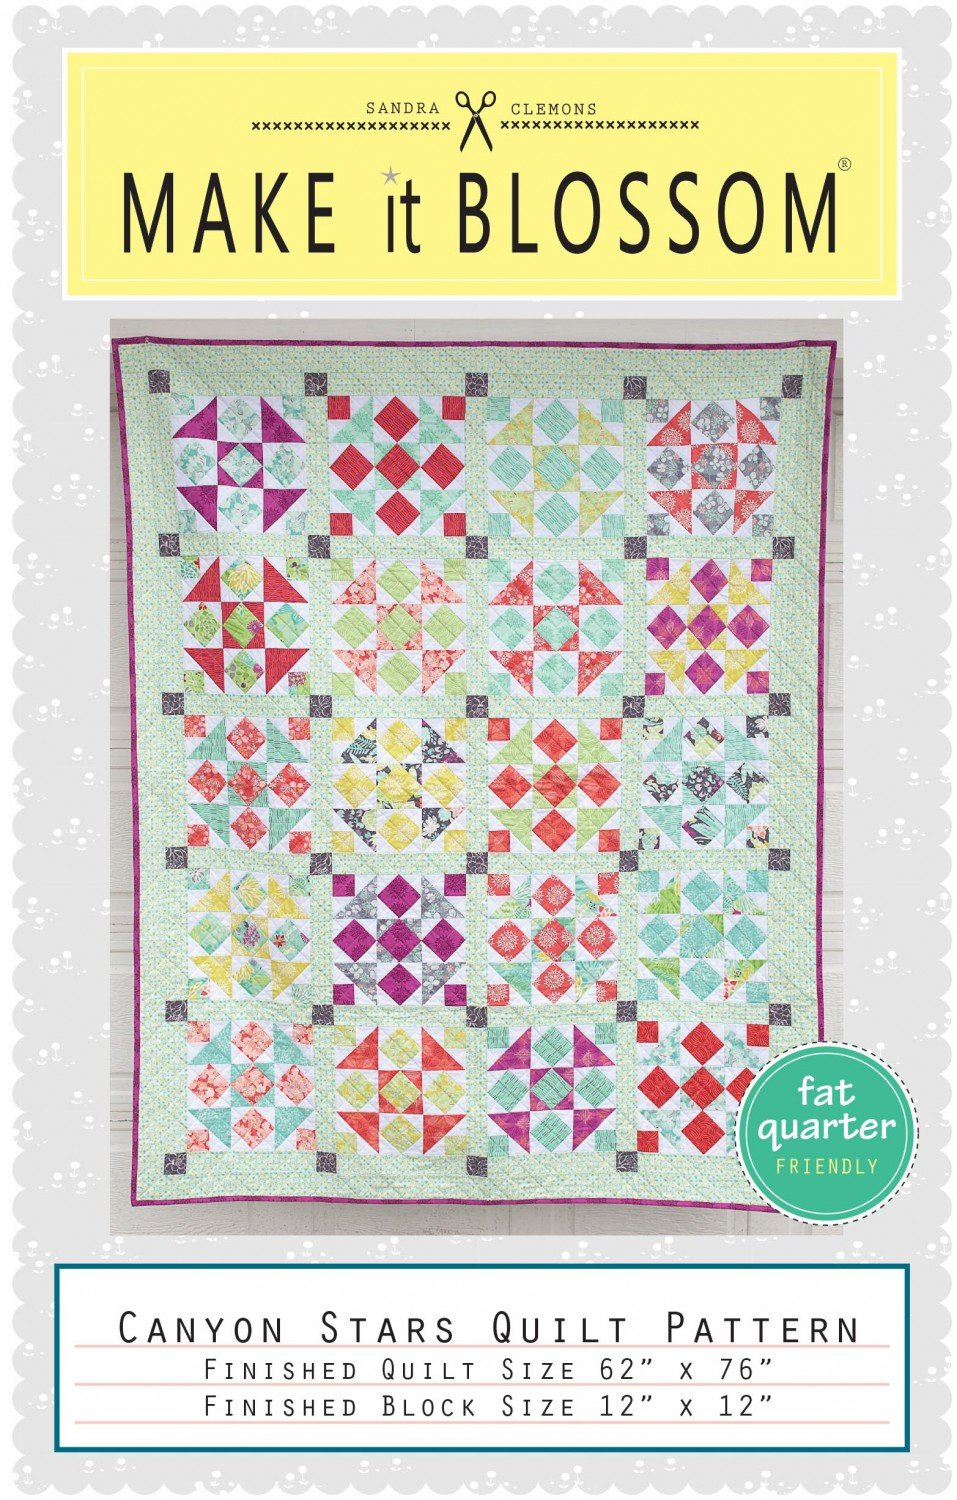 Canyon Stars Quilt pattern